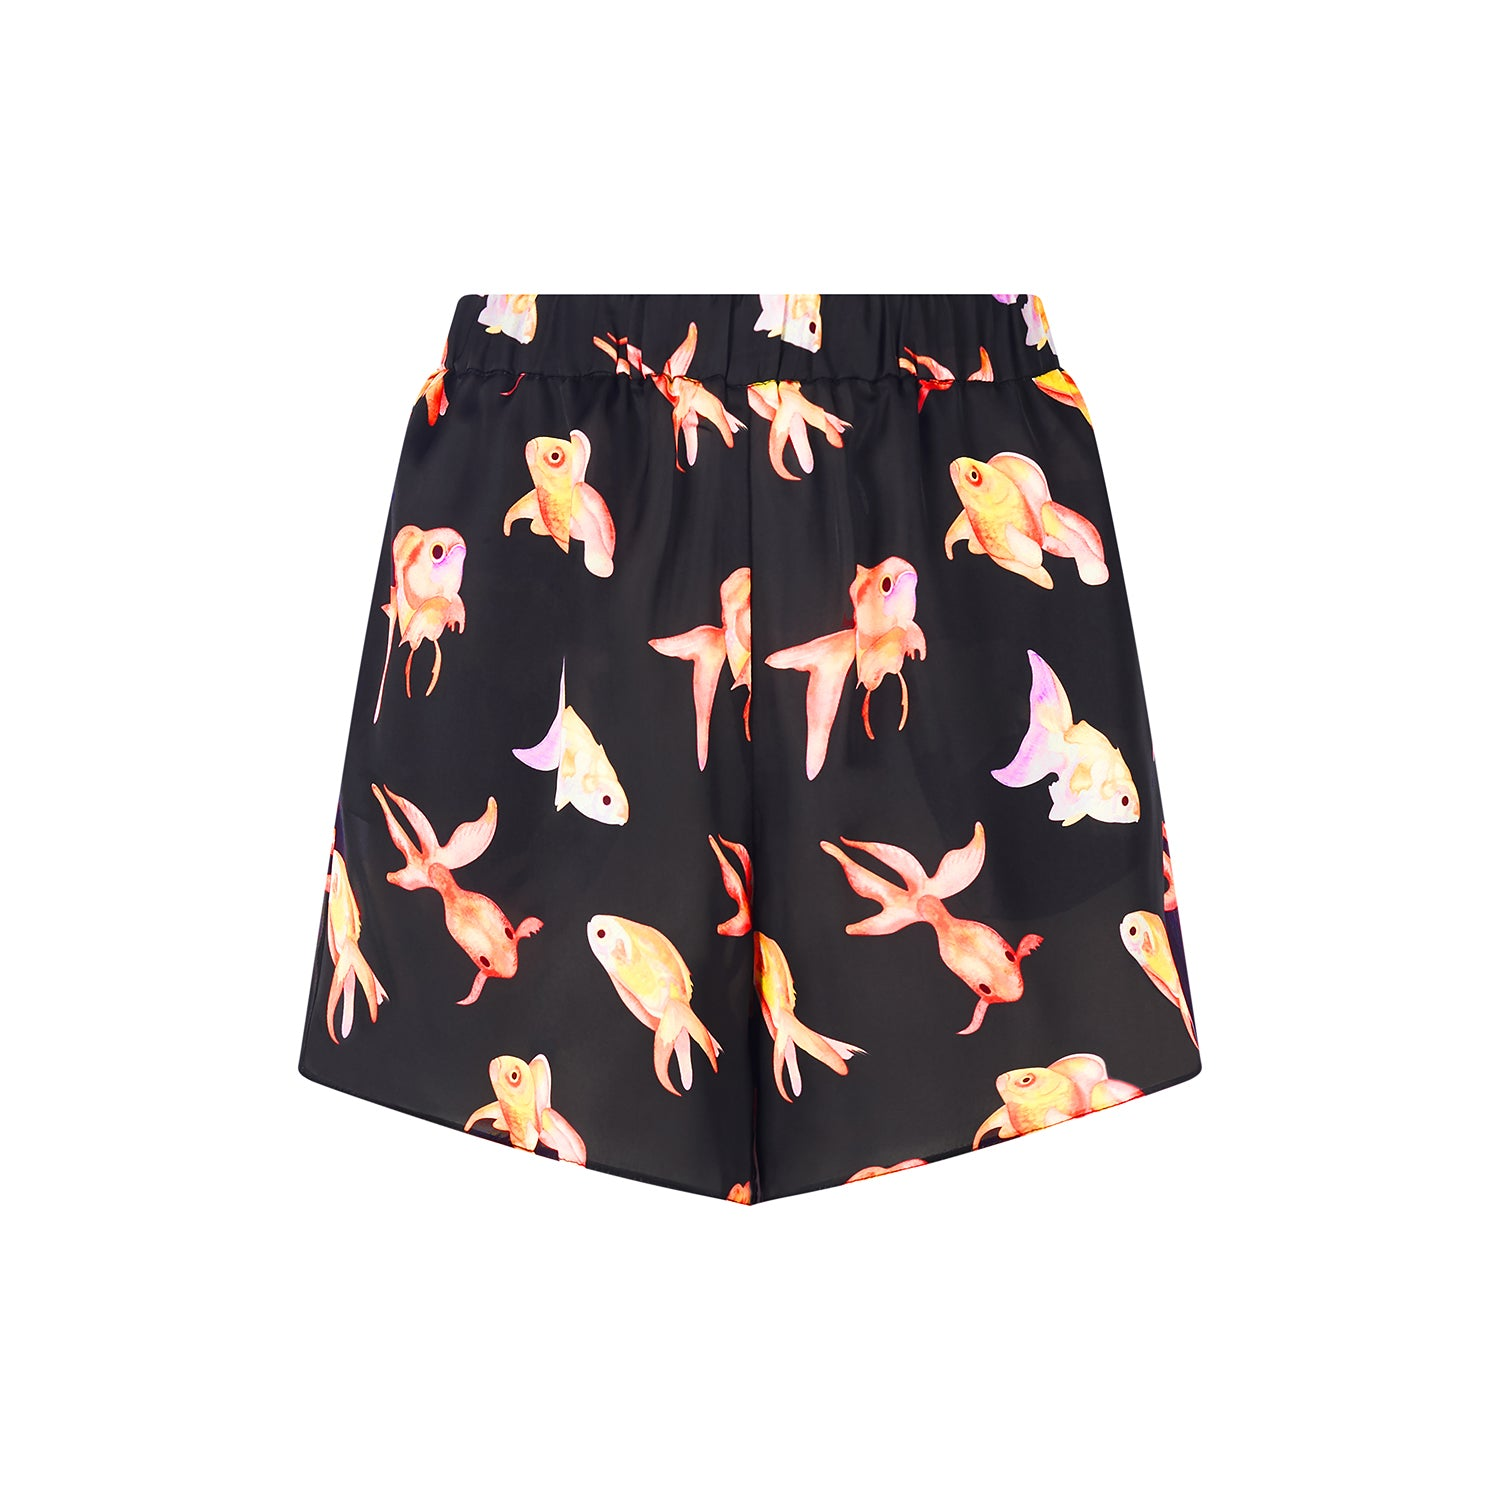 Goldfish shorts featuring a pretty hand painted fish design by Louise Coleman